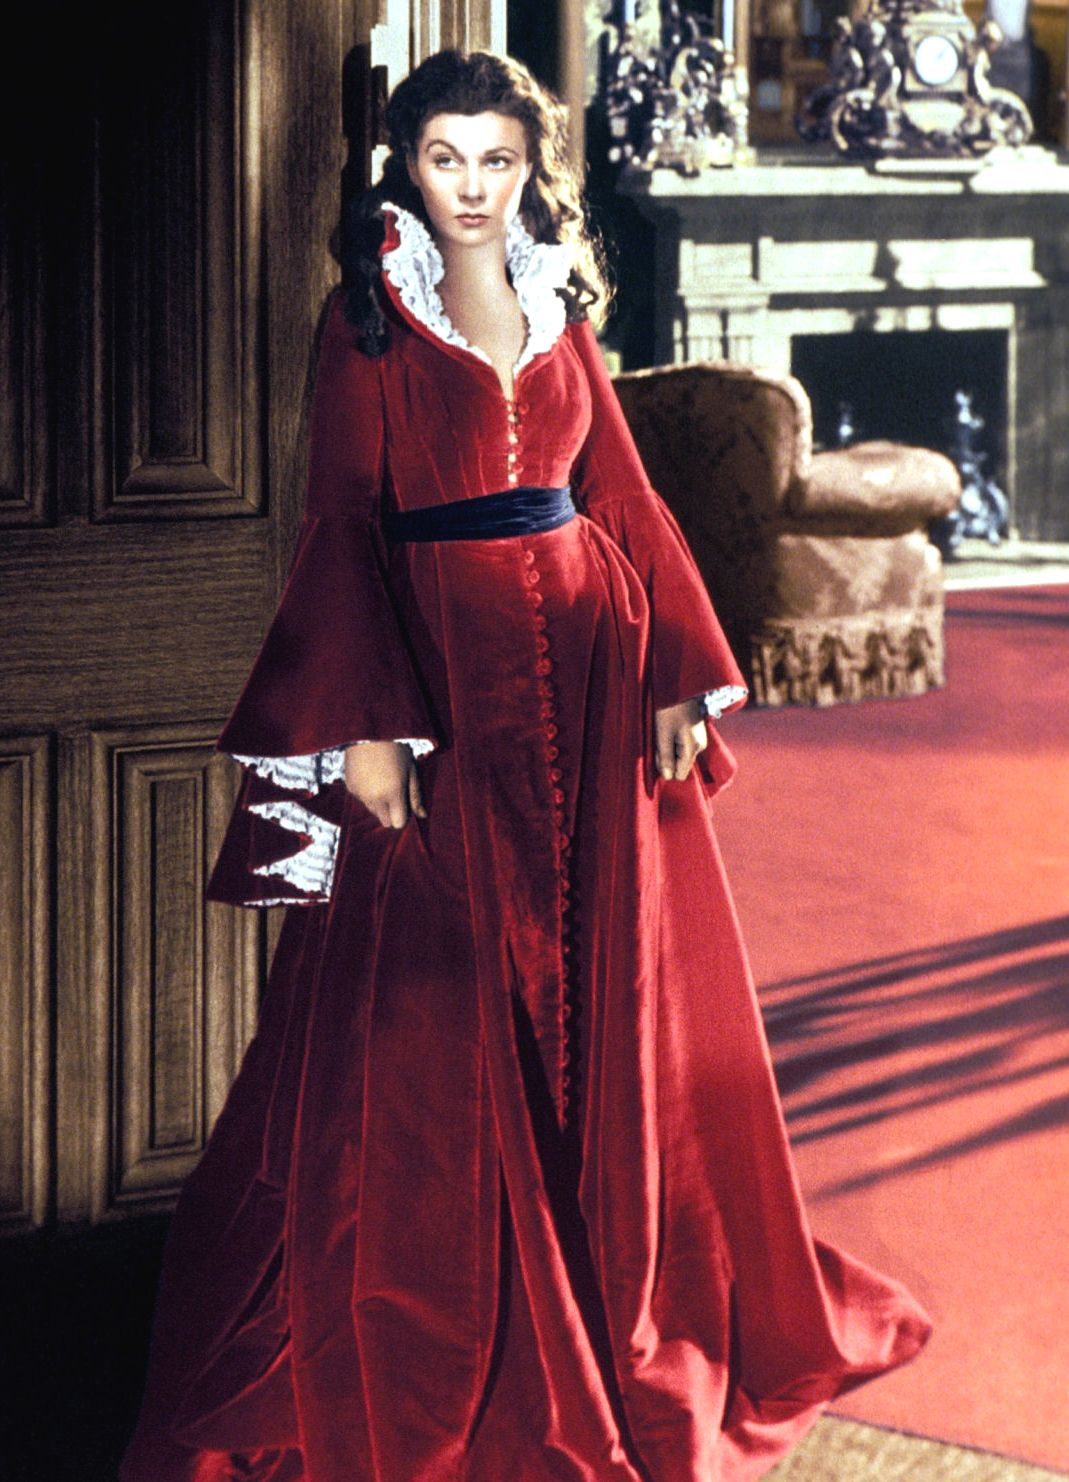 Vivien Leigh as Scarlett O'Hara in her red dressing gown ...